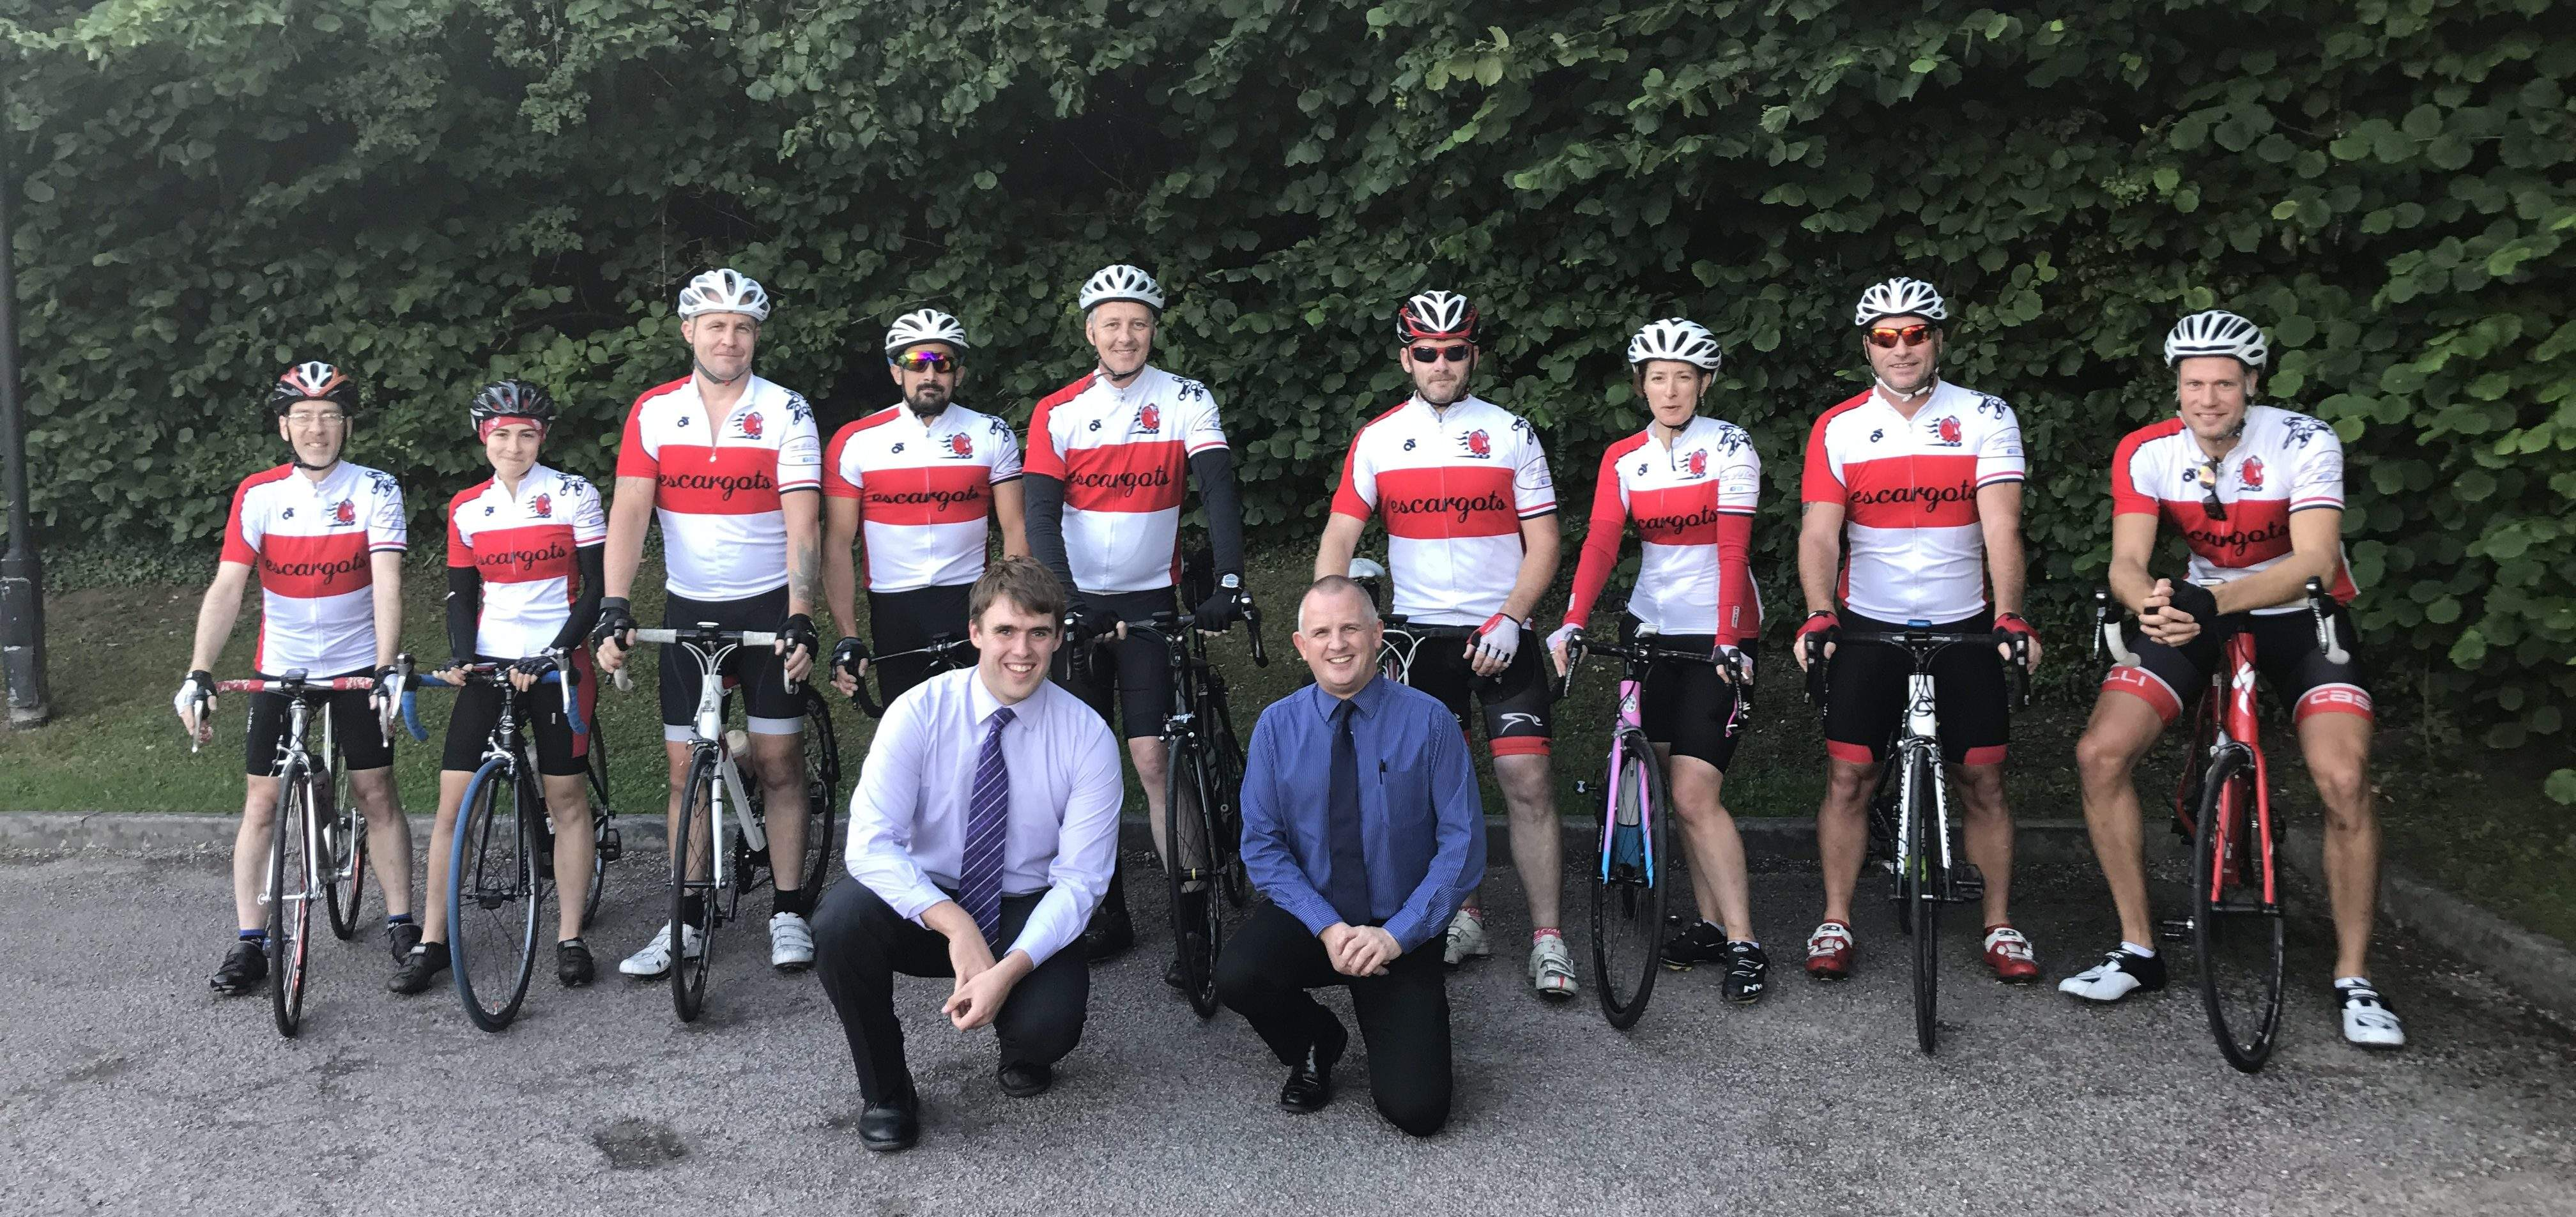 Redditch Cycling Snails to Raise Funds for Local Children's Charity